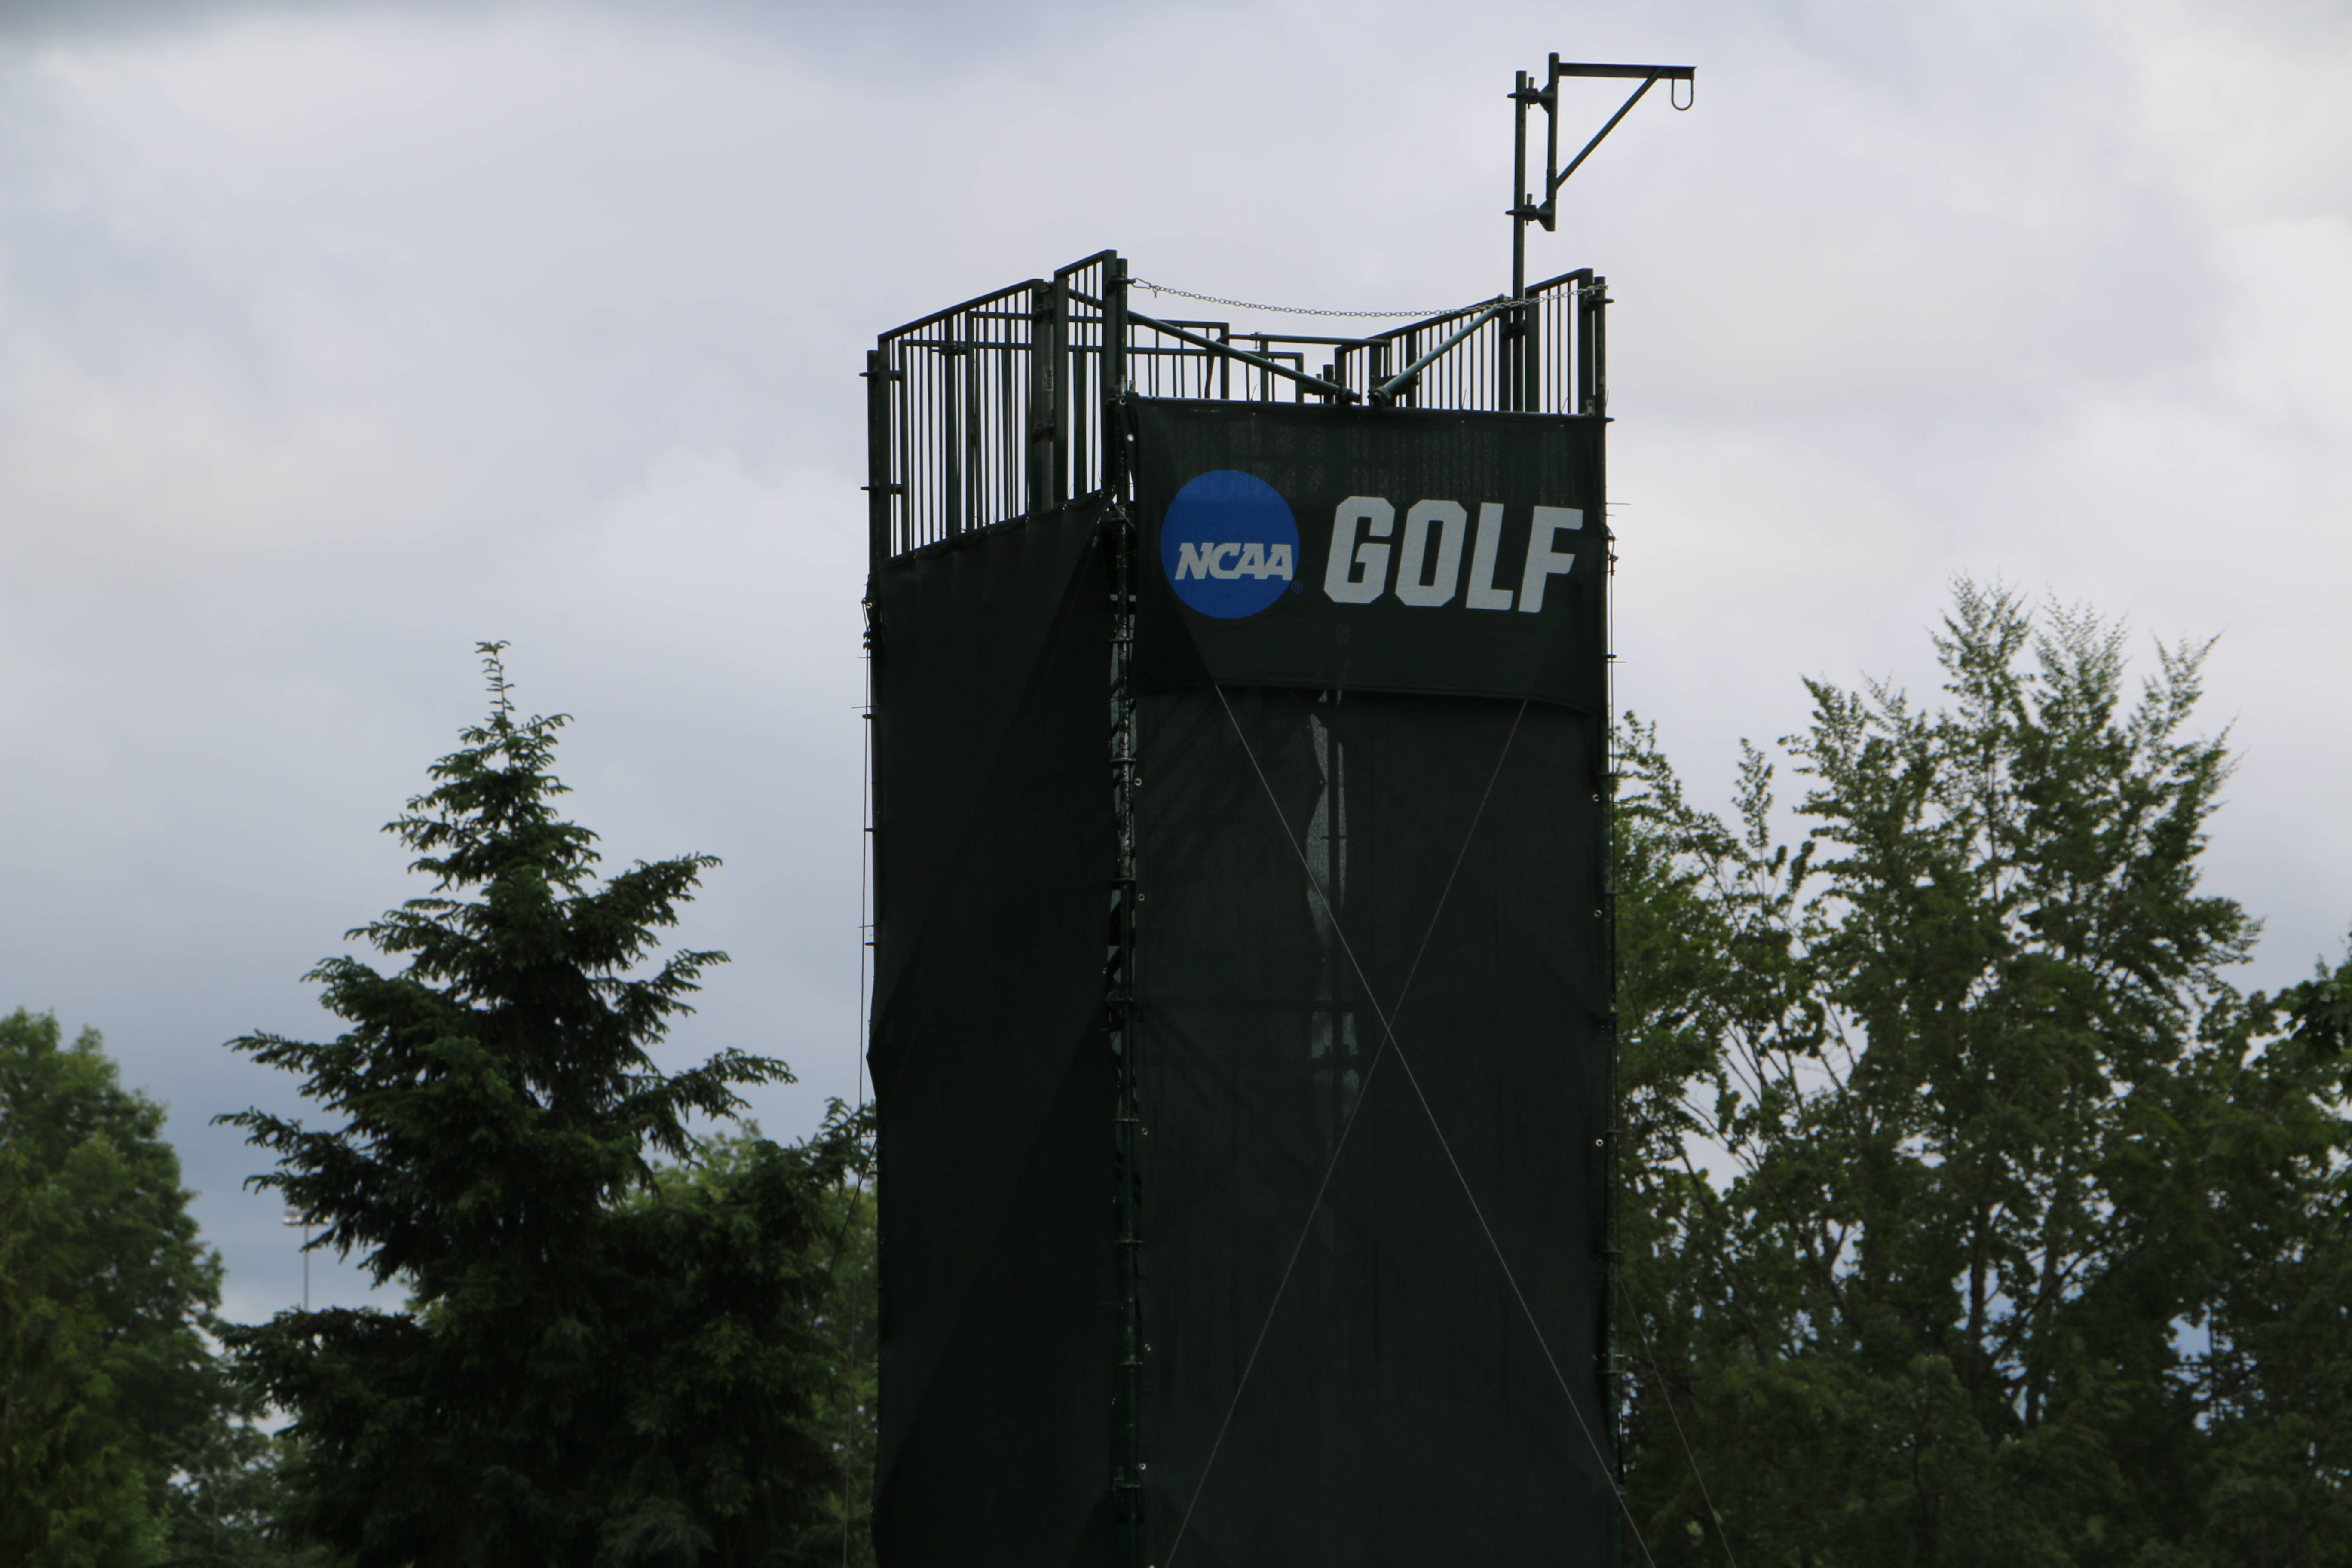 Florida State Practice Round At NCAA Division I Women's Golf Tournament